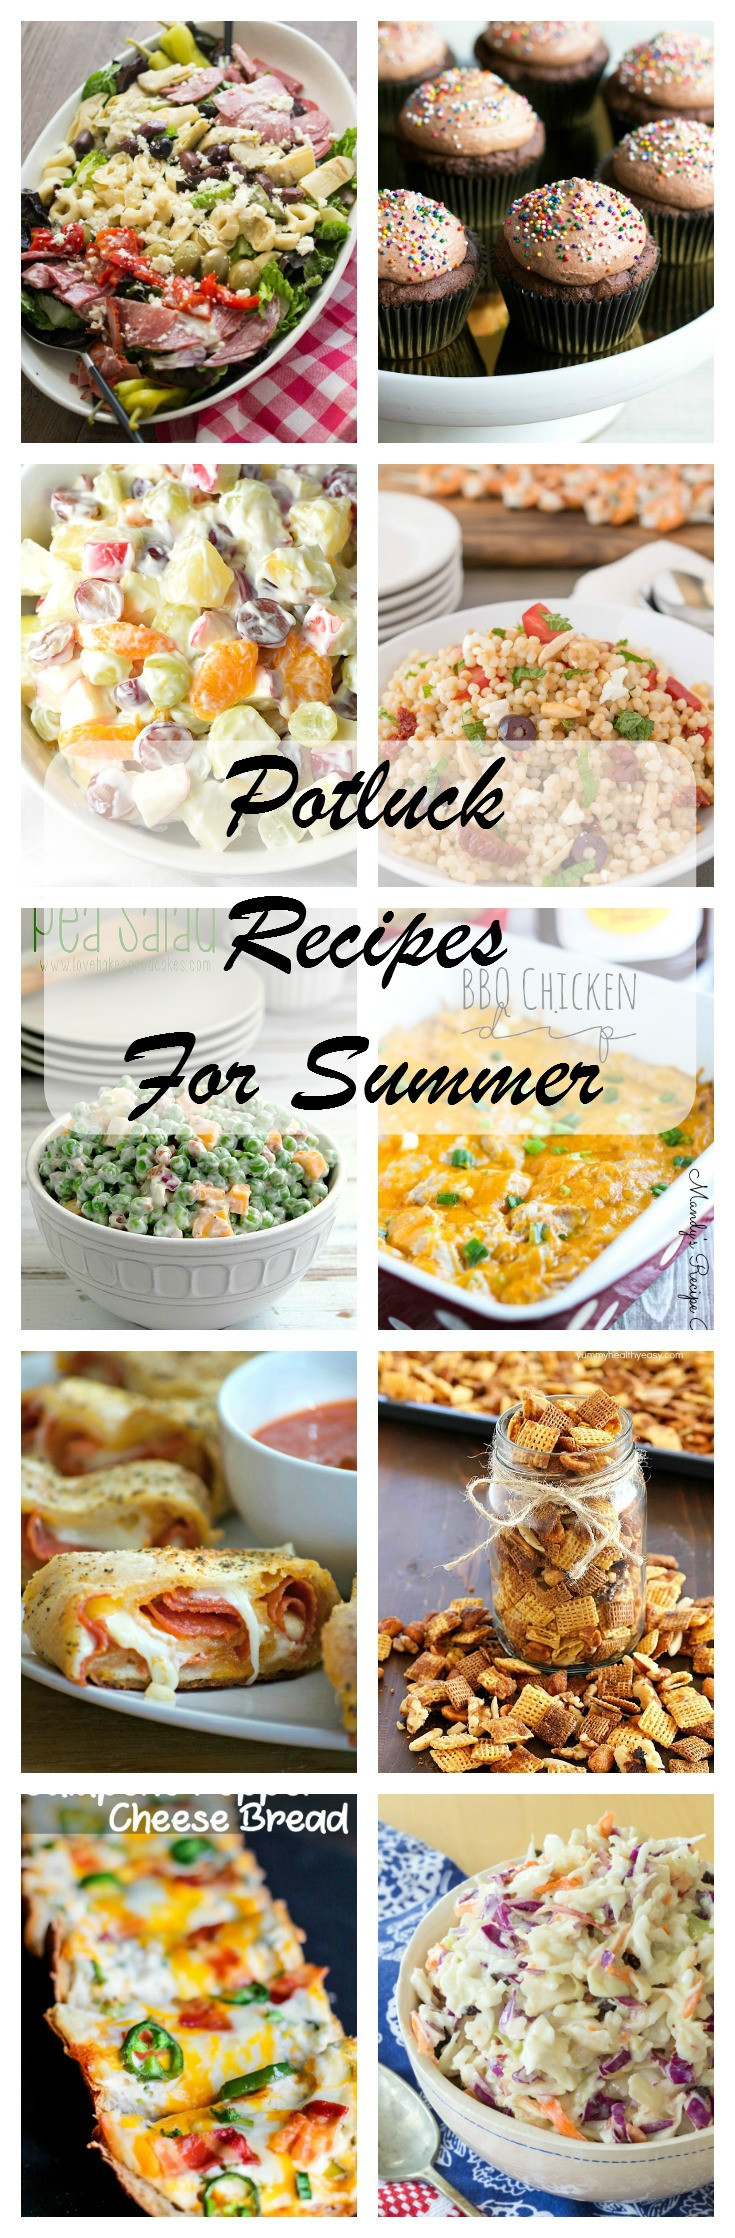 Potluck Side Dishes For Summer  Best Summer Potluck Recipes Kleinworth & Co